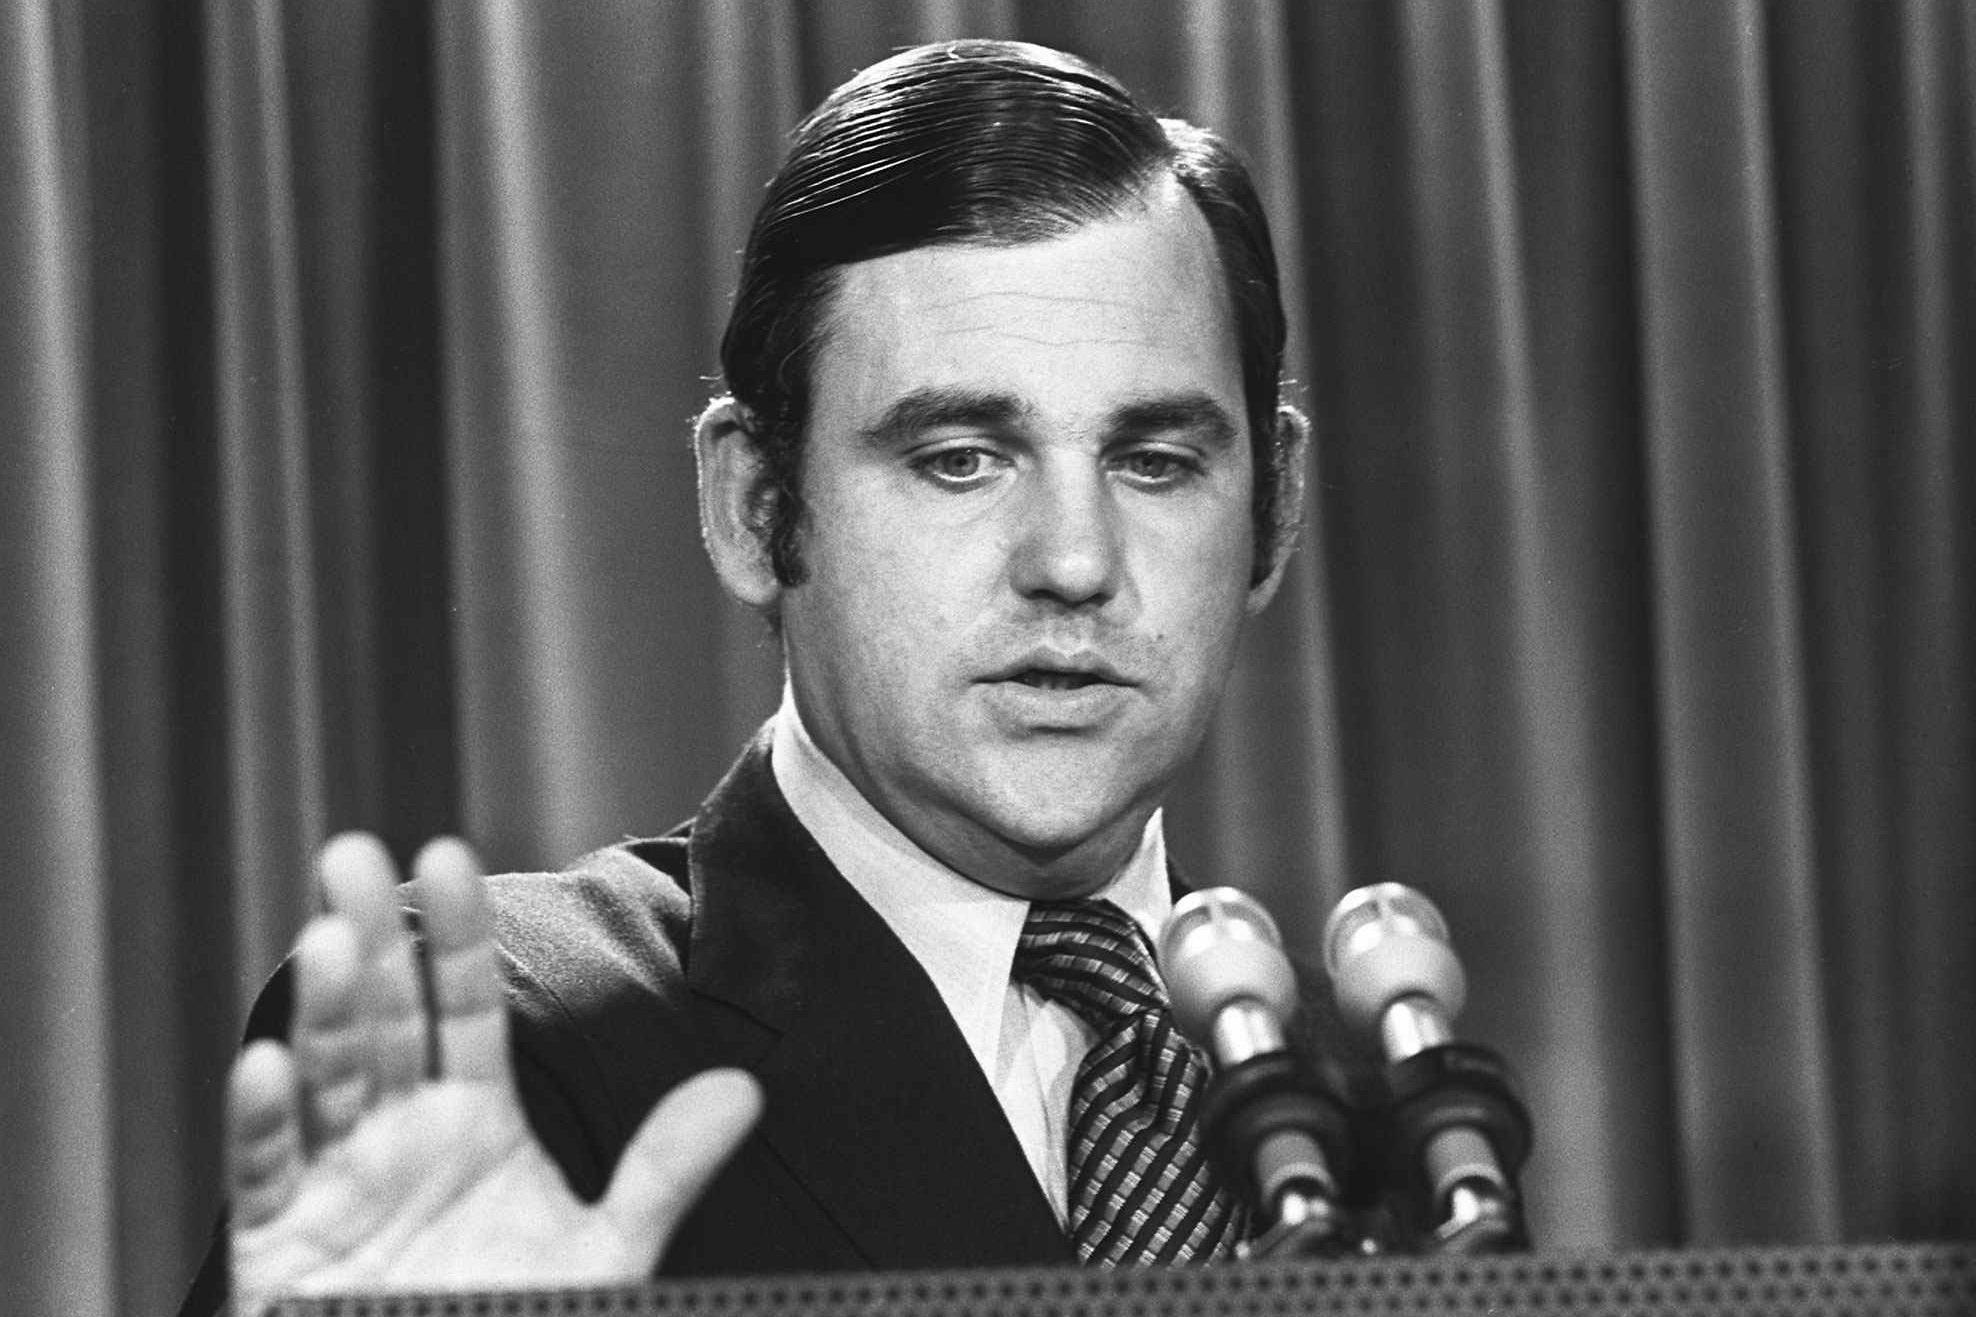 president nixon and the watergate scandal The break-in that started it occurred in june 1972 richard nixon didn't resign  until august 1974 and as the scandal spooled out, it gradually.